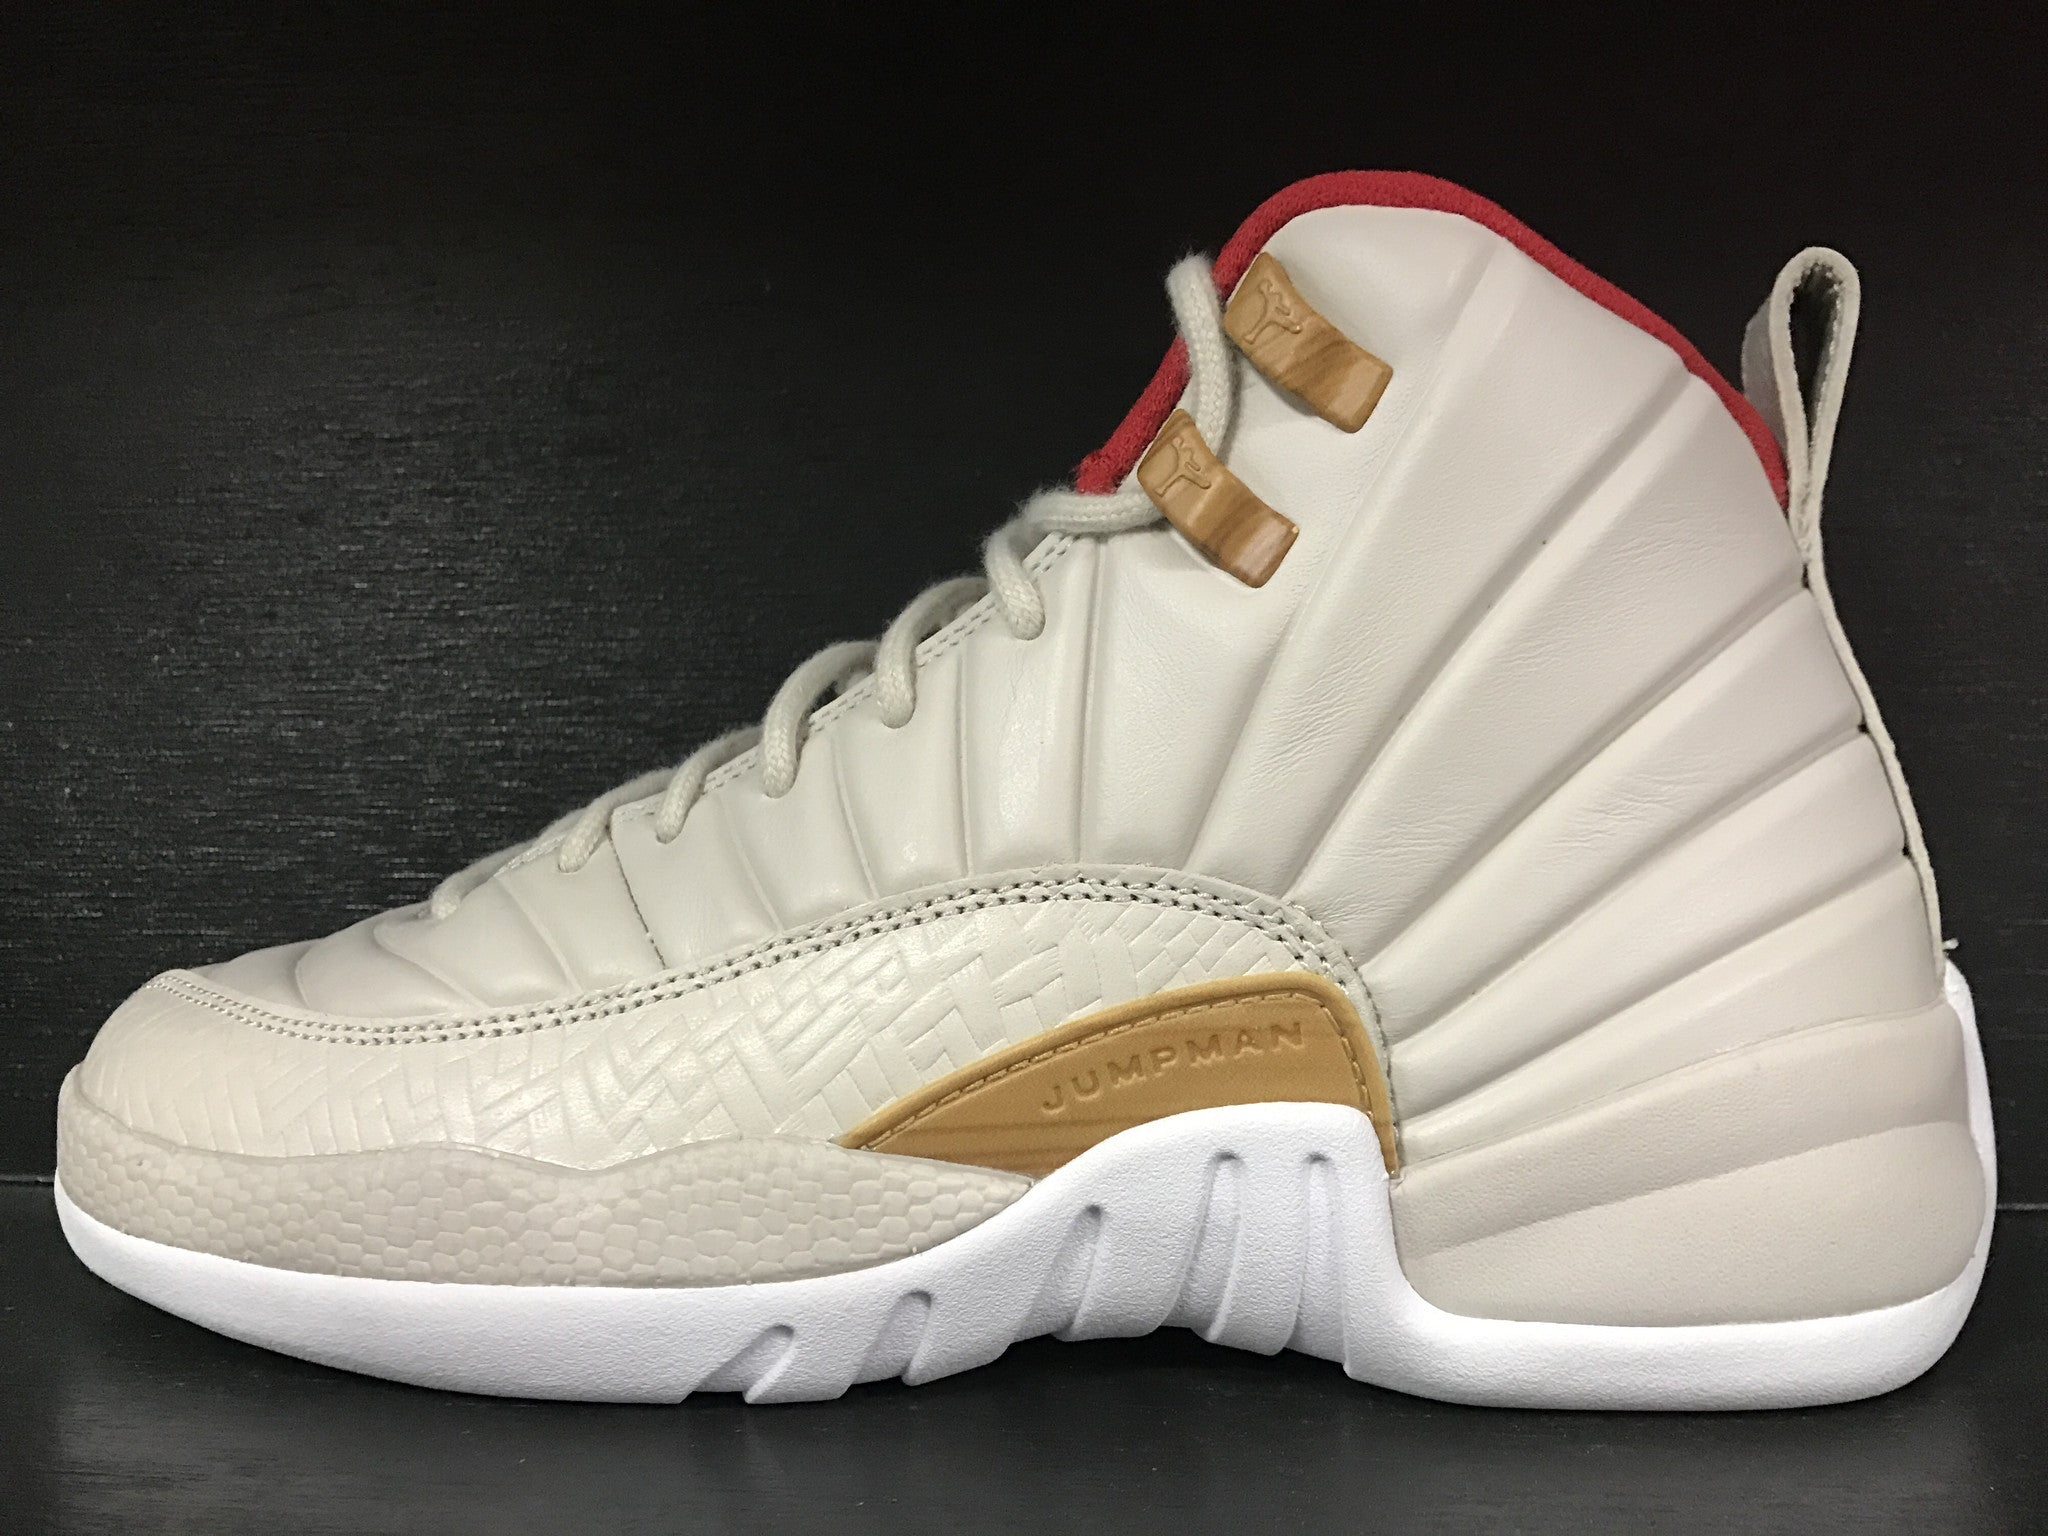 Air Jordan 12 Retro 'Chinese New Year' GS